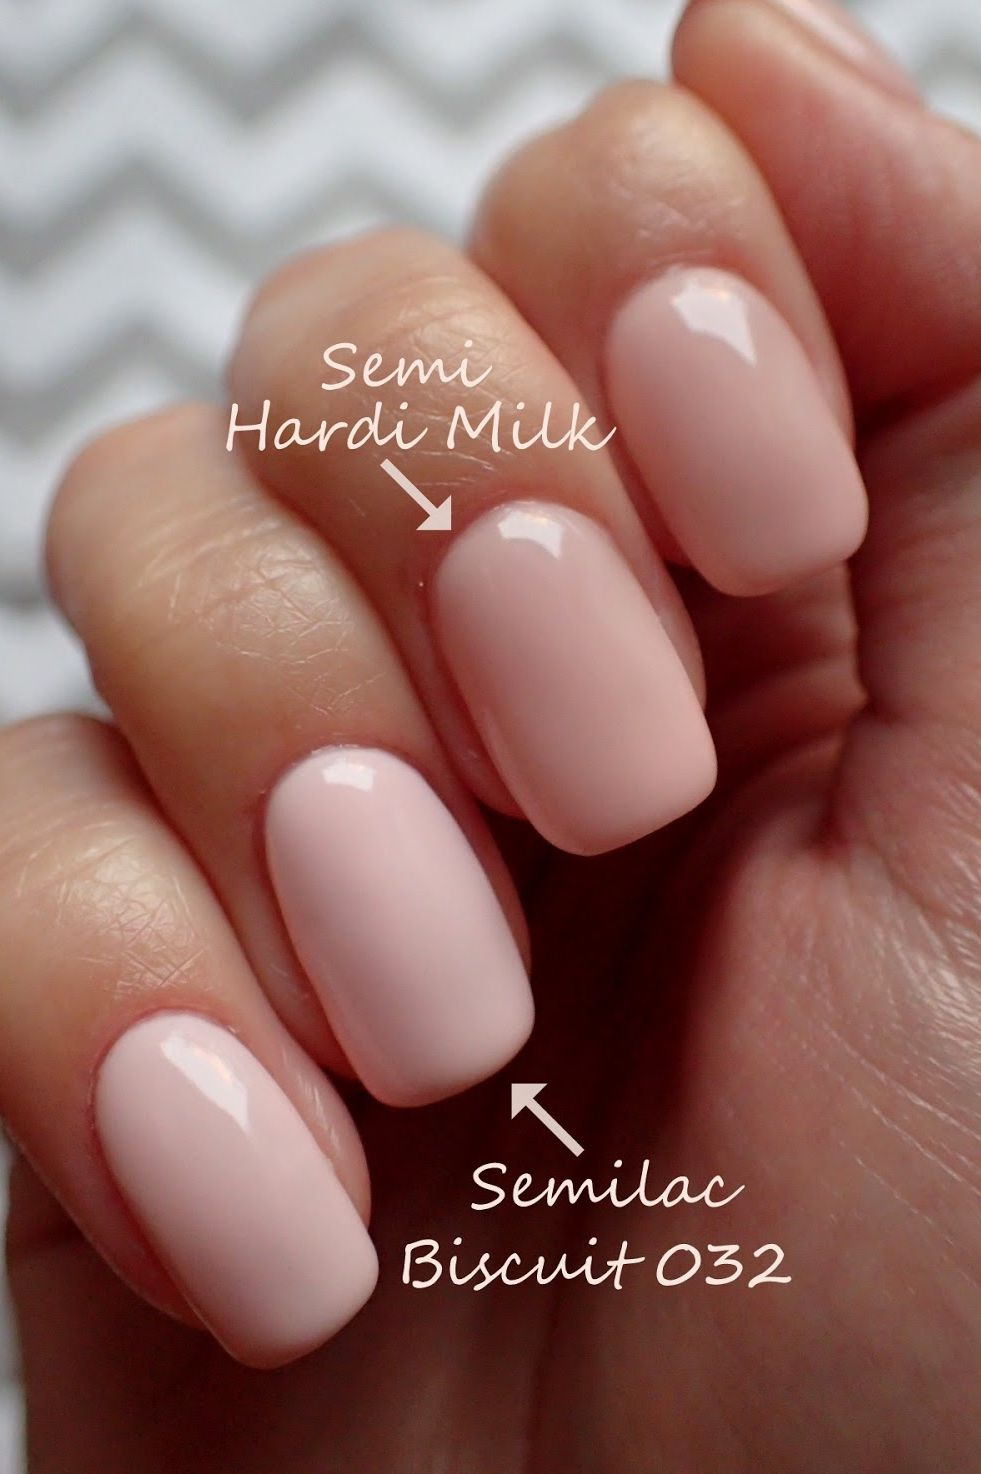 Semilac 032 Biscuit Lakier Hybrydowy Hybryda Nail Colors Manicure Nails